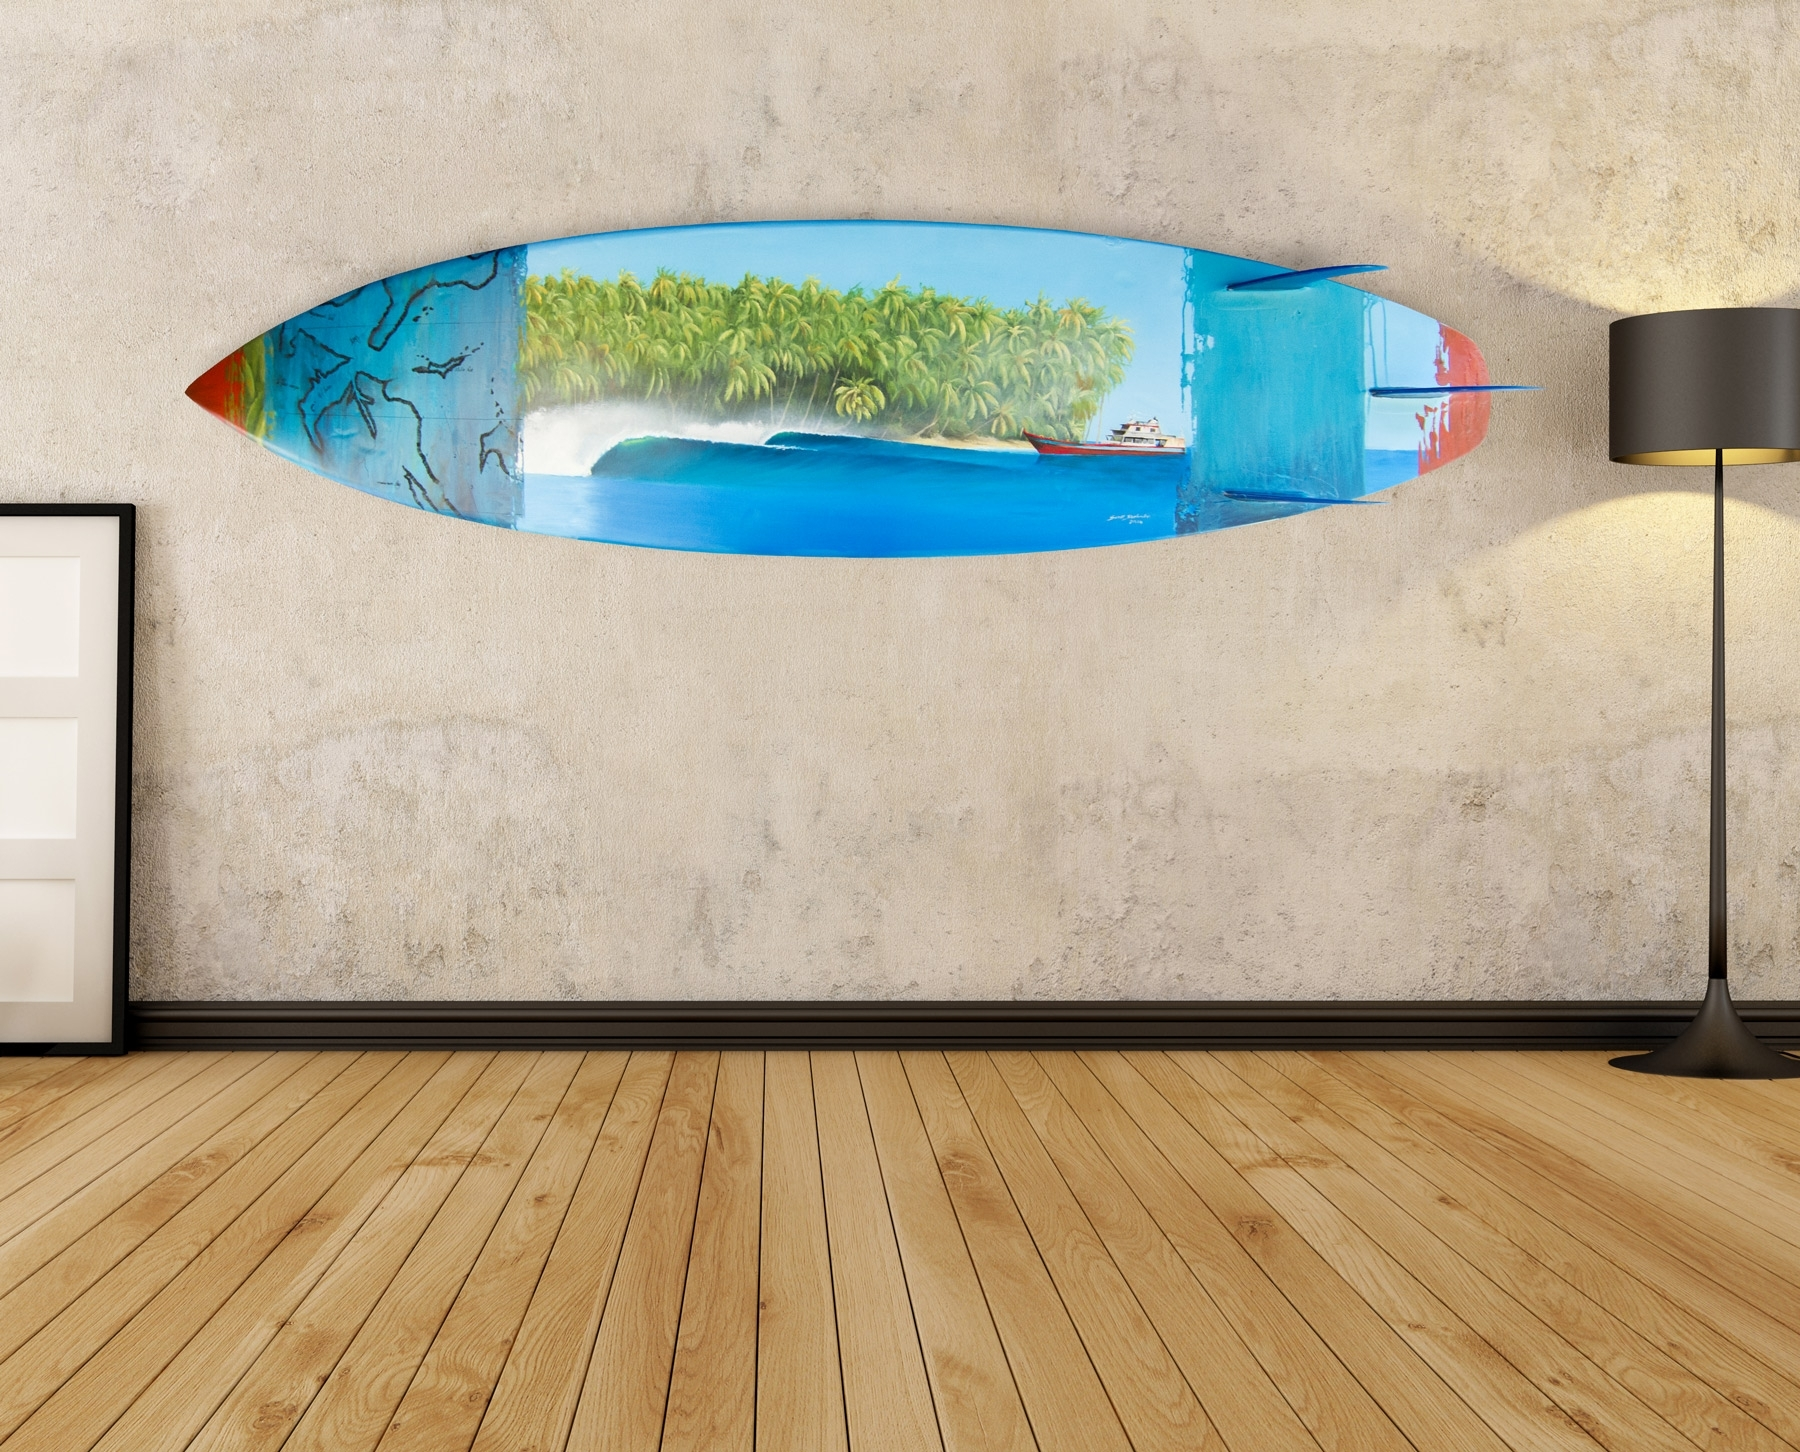 Surfboard Wal Vintage Surfboard Wall Art – Wall Decoration And Wall Intended For 2017 Surfboard Wall Art (Gallery 1 of 20)